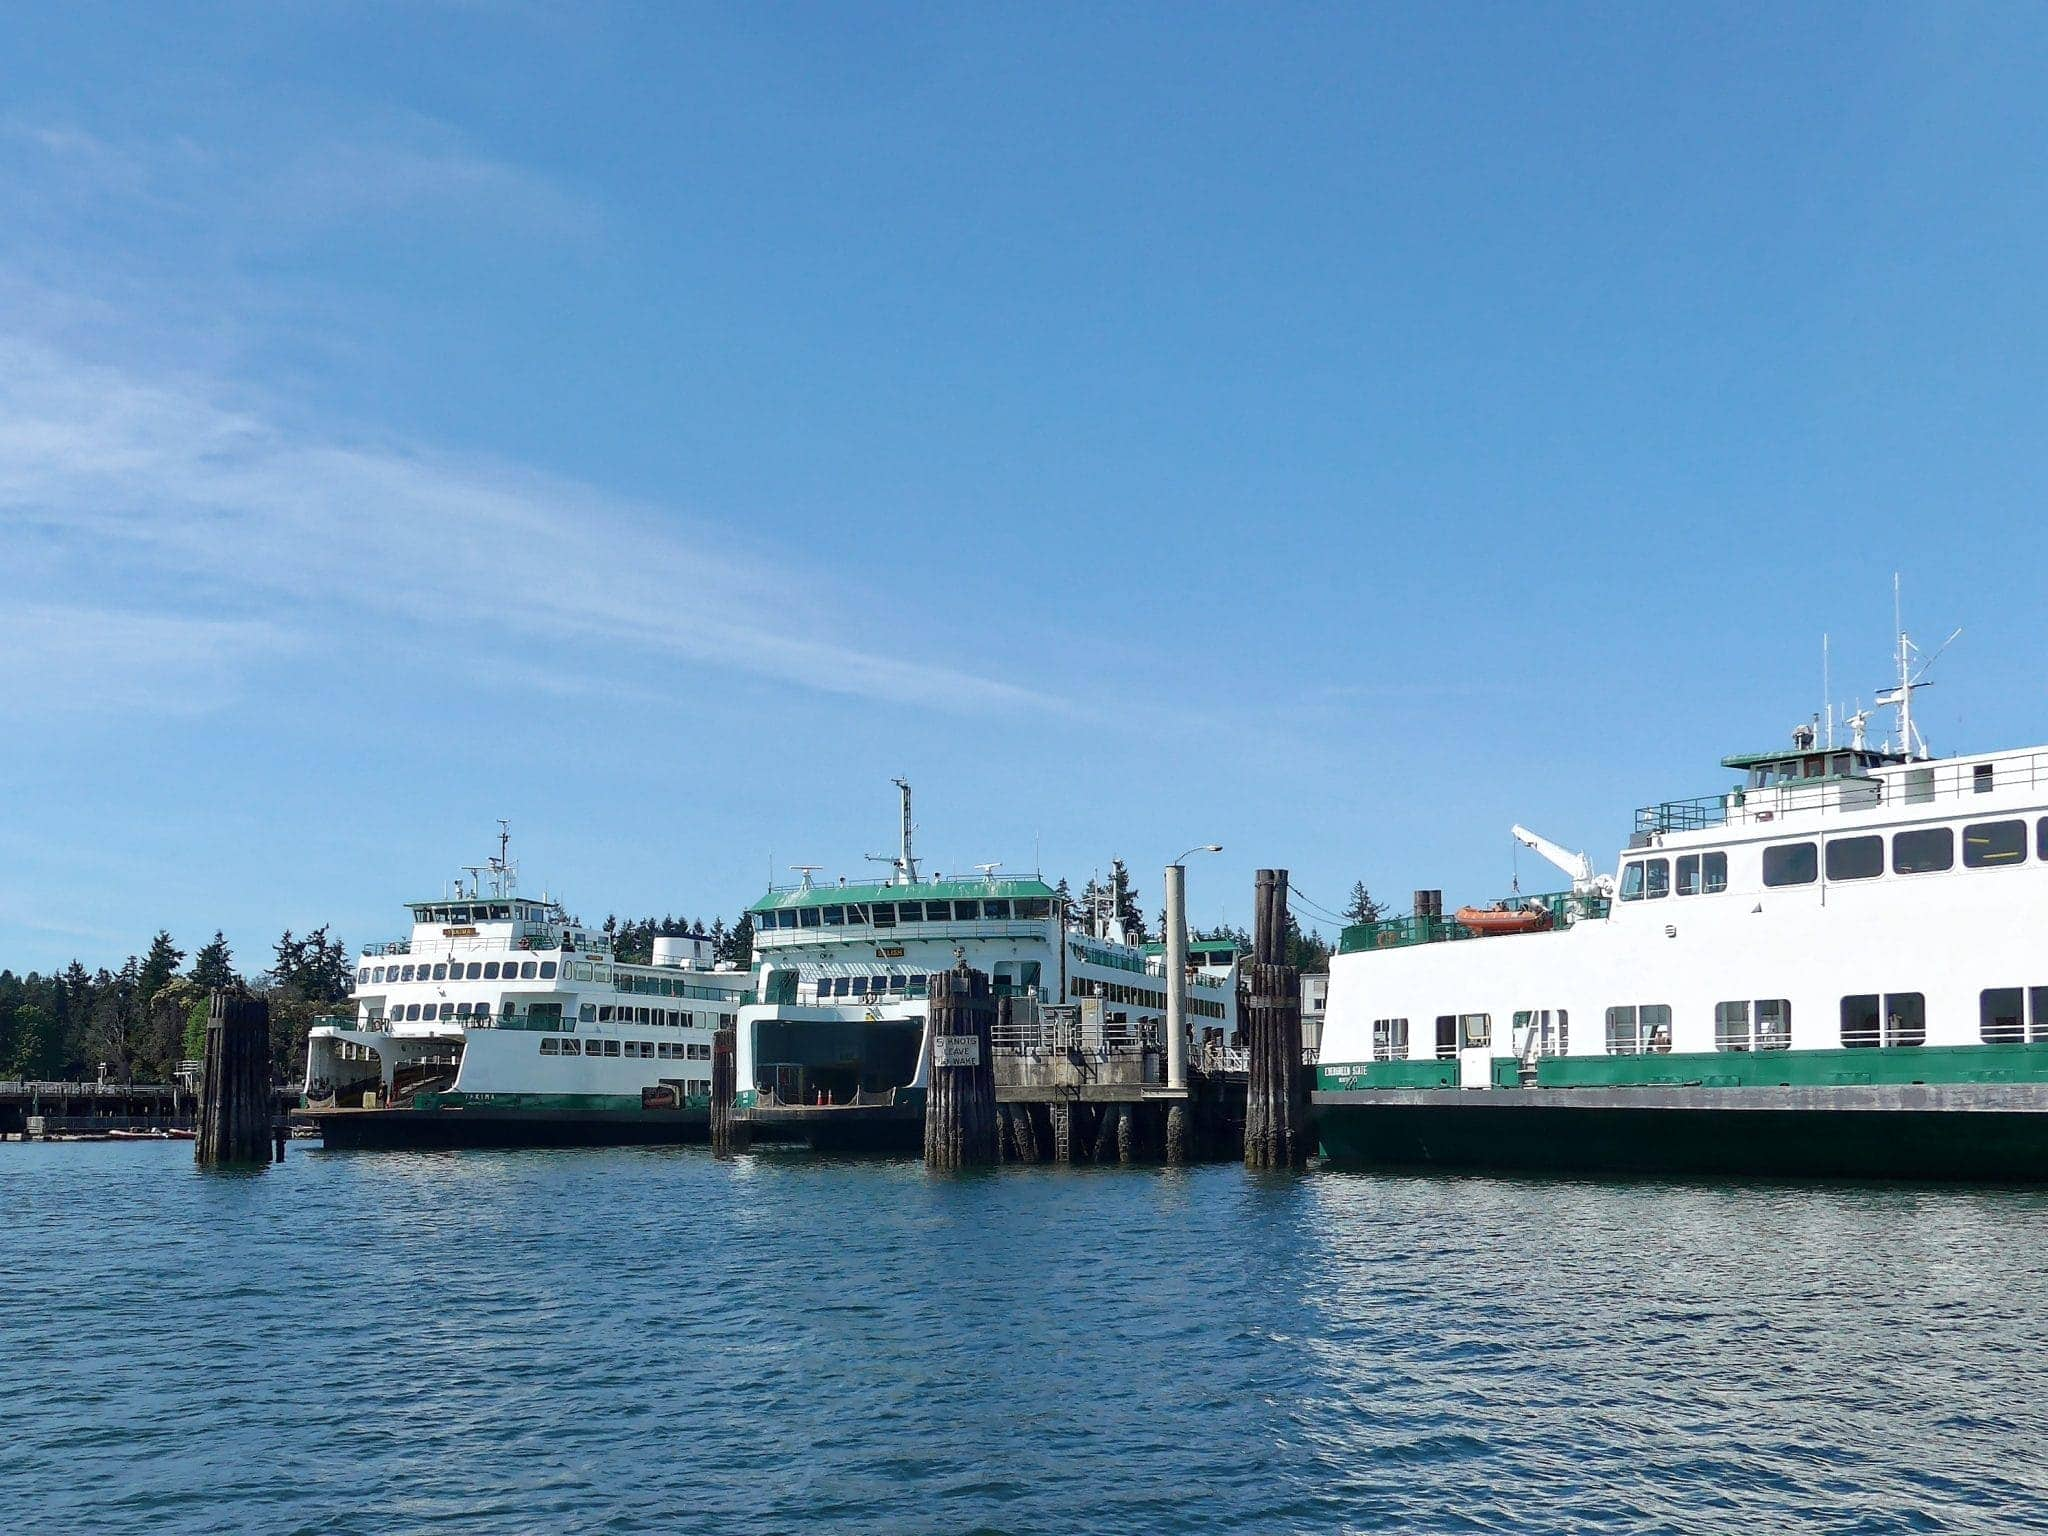 Ferries Yakima and Salish in Eagle Harbor